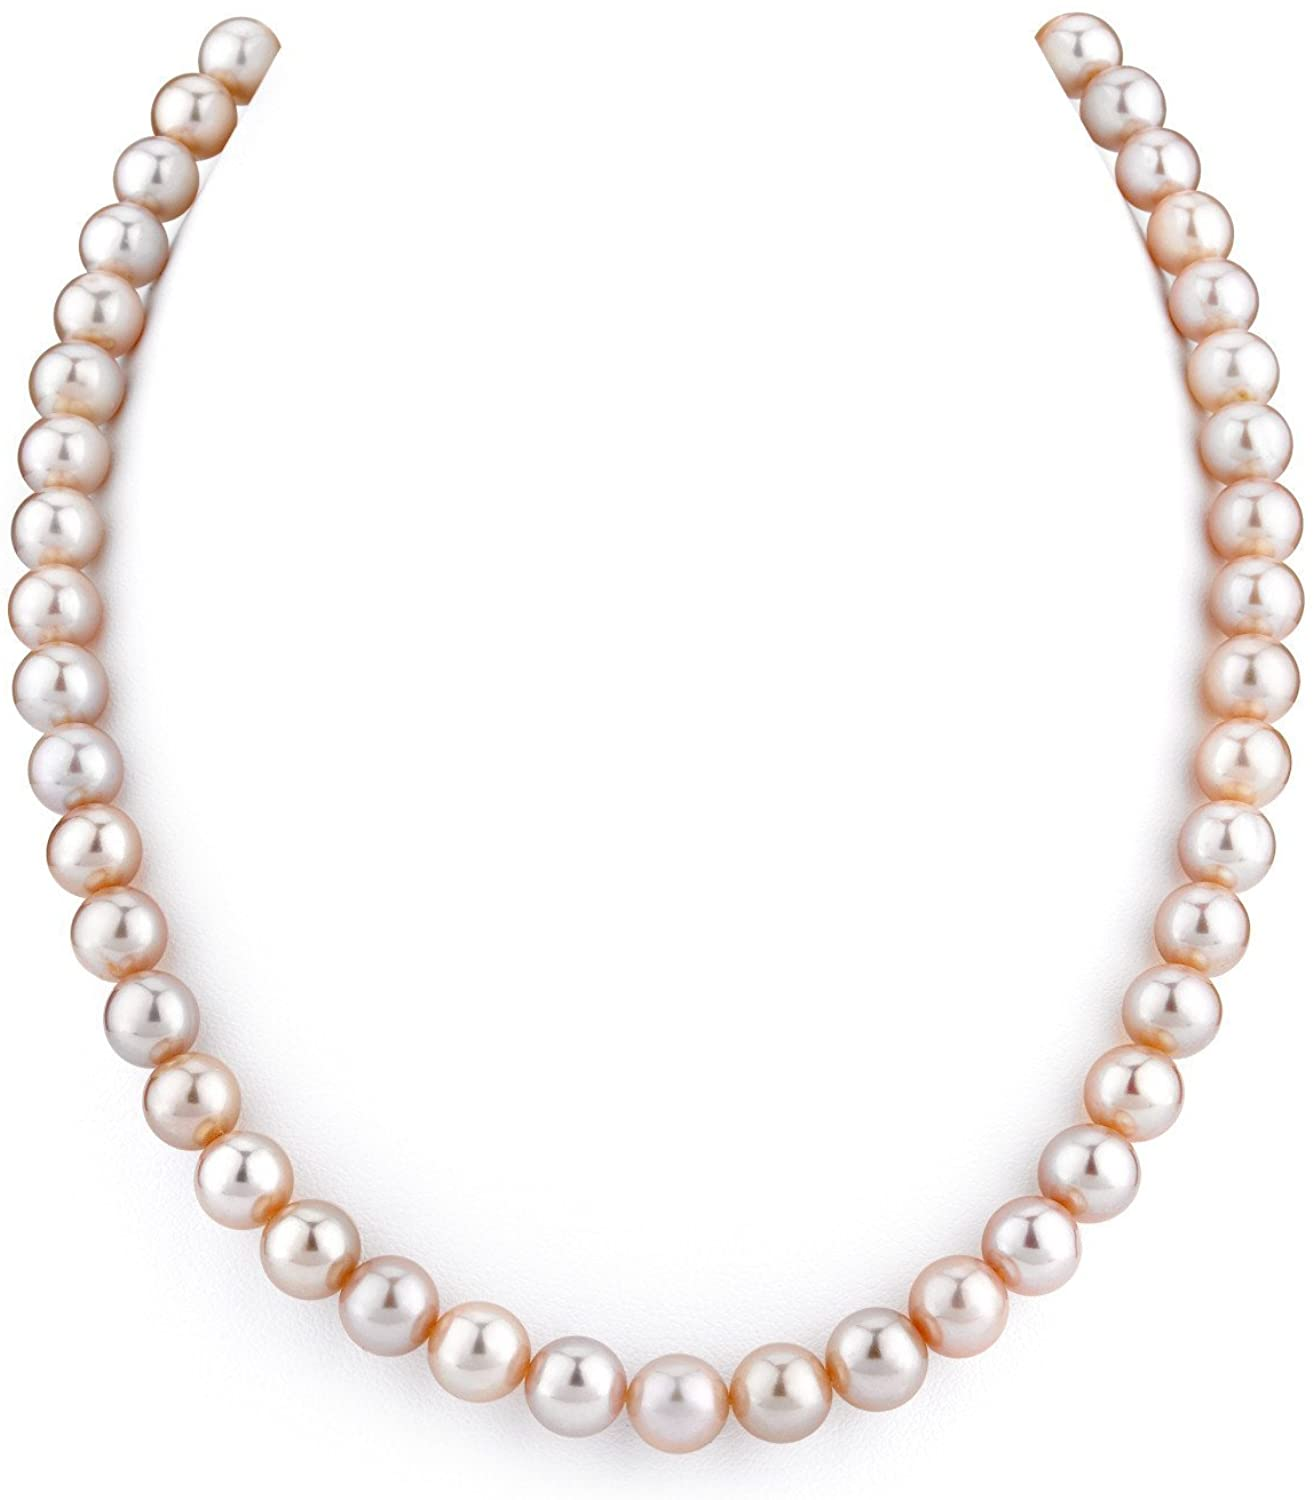 THE PEARL SOURCE 14K Gold 8-9mm AAAA Quality Pink Freshwater Cultured Pearl Necklace for Women in 18